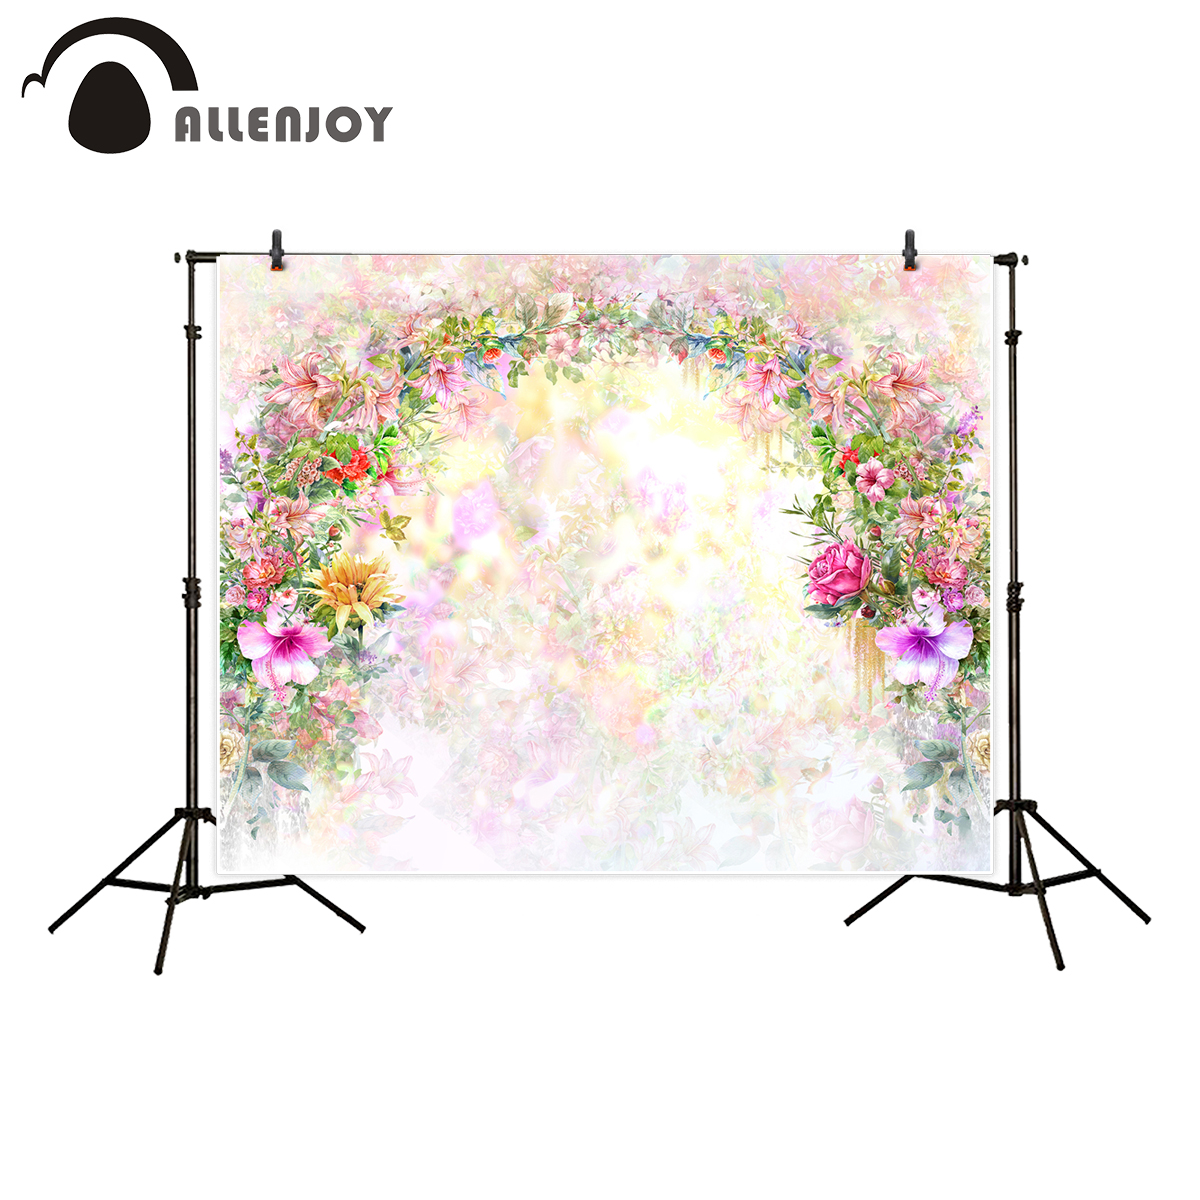 Allenjoy photography backdrop flower door wedding children painting colorful background photo studio photocall photo shoot allenjoy photography backdrop library books student child newborn photo studio photocall background original design